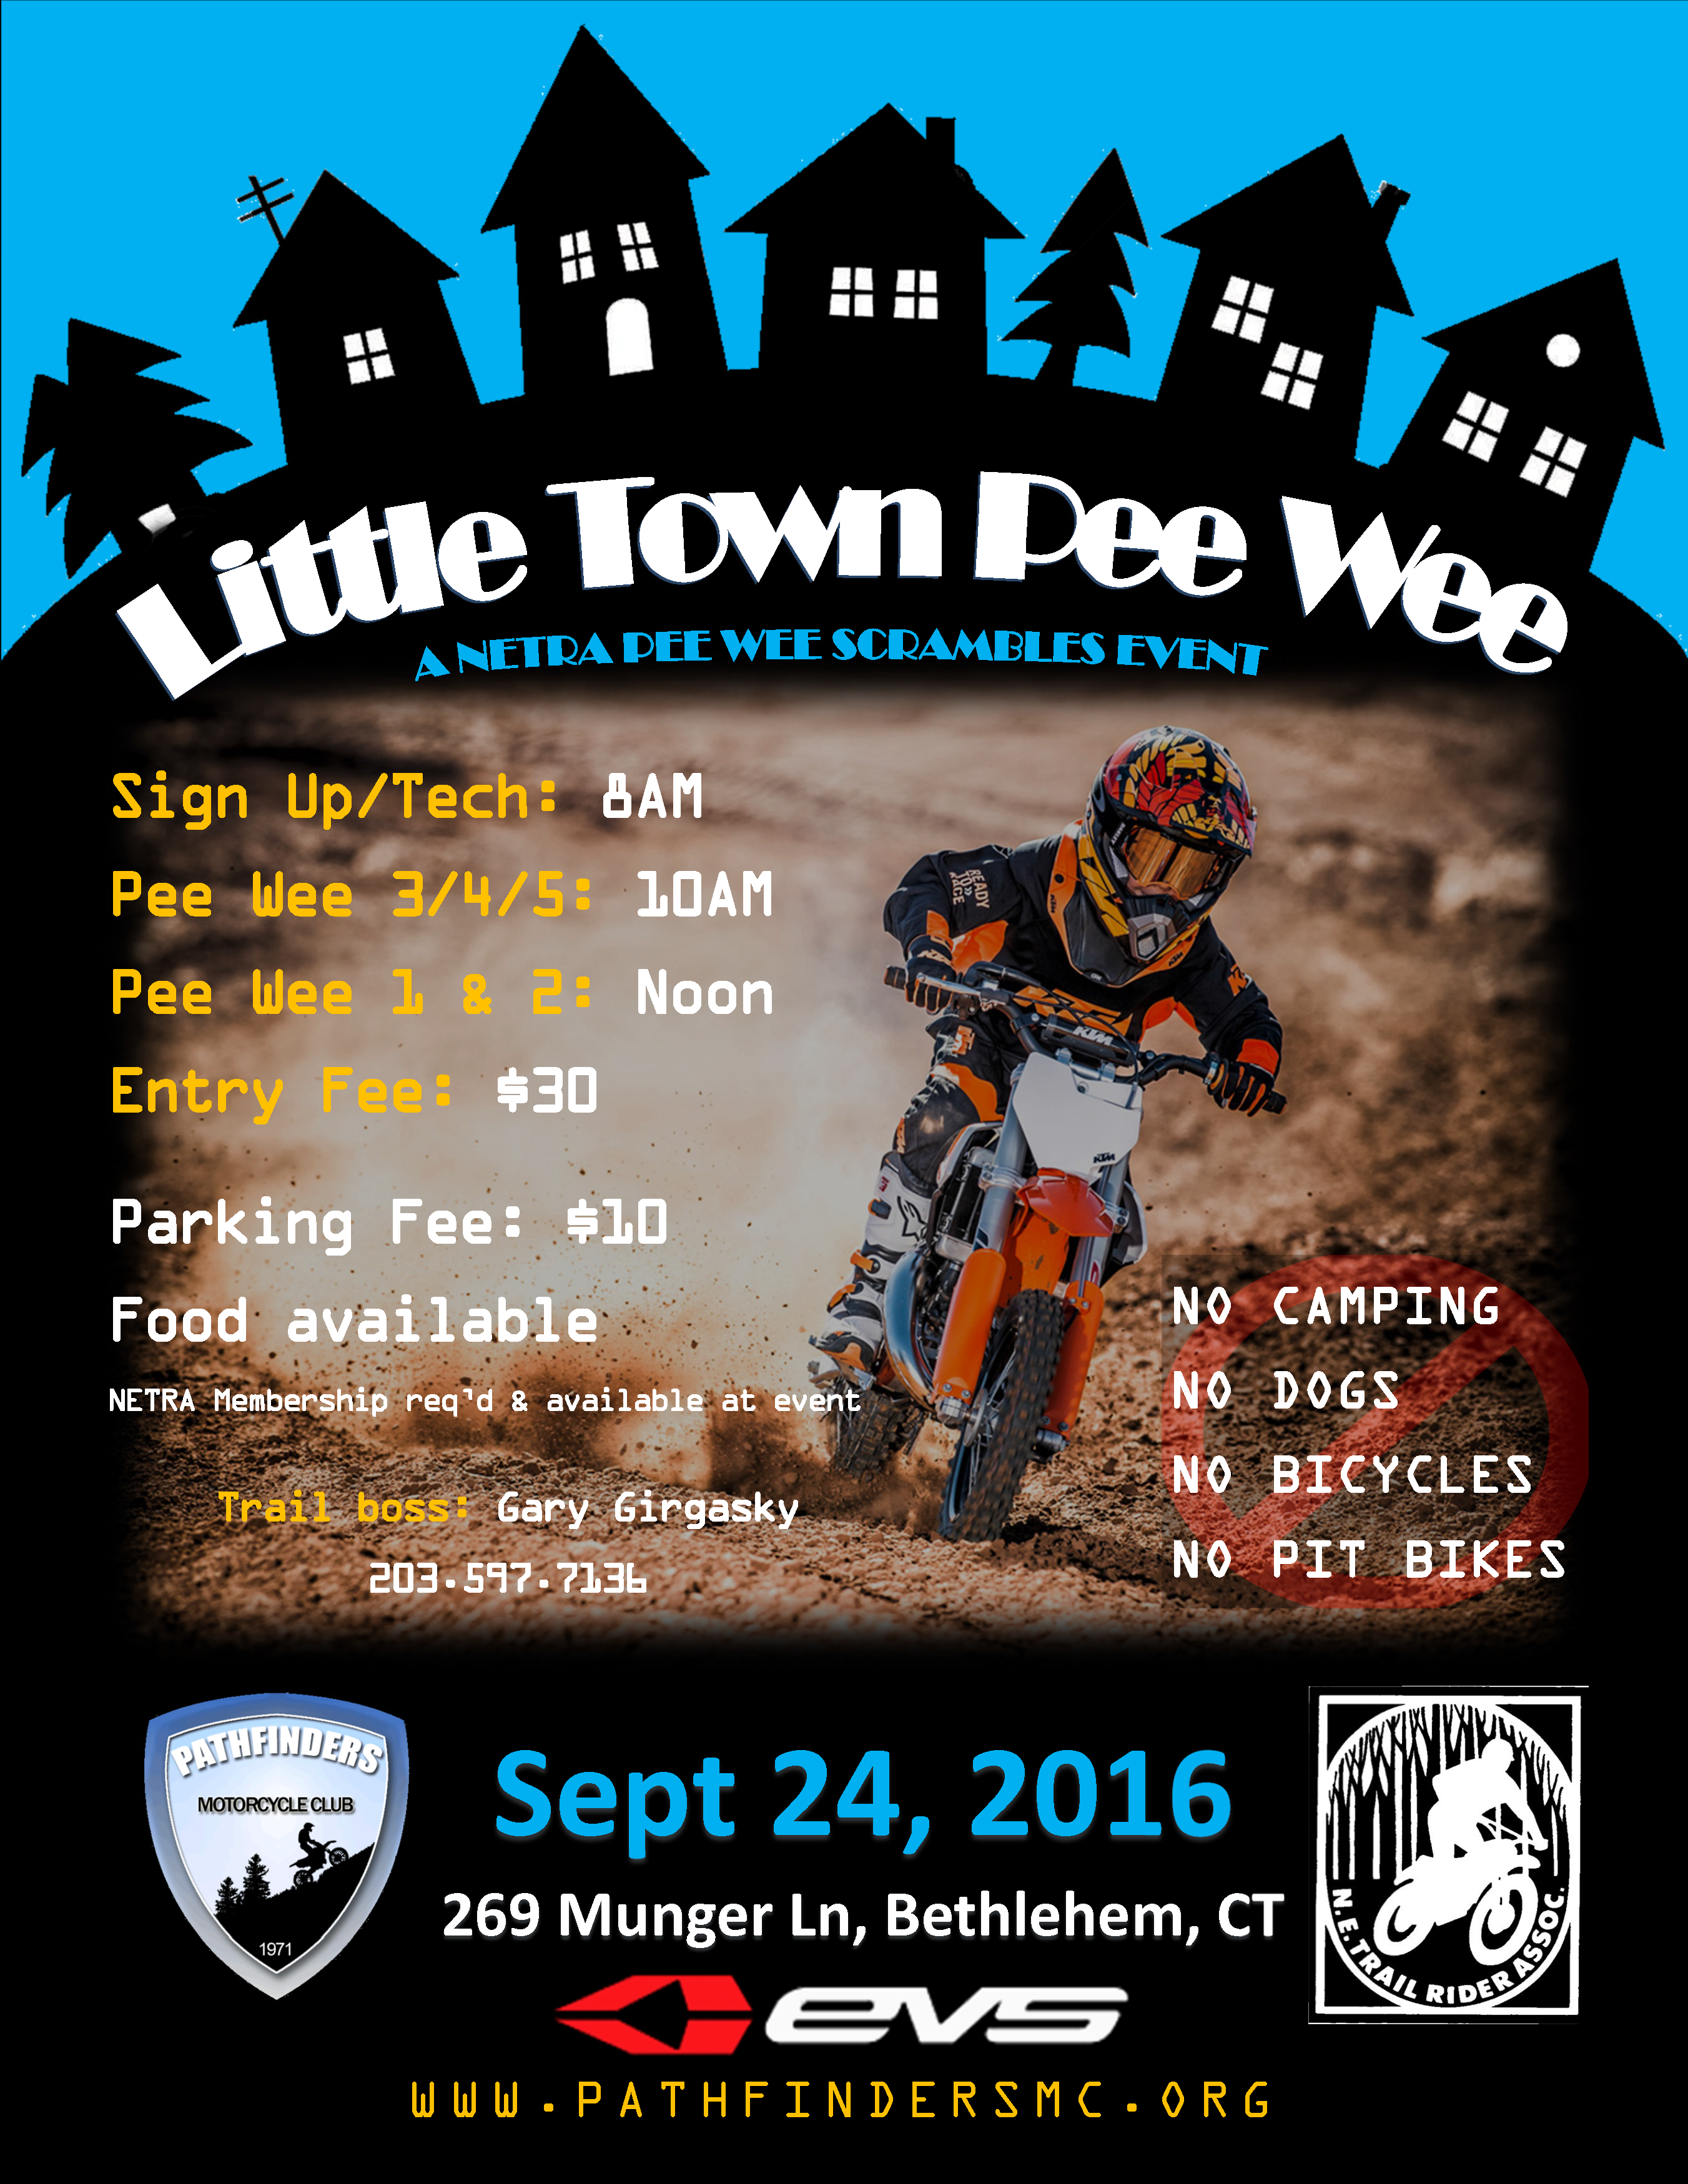 2016 Little Town Pee Wee